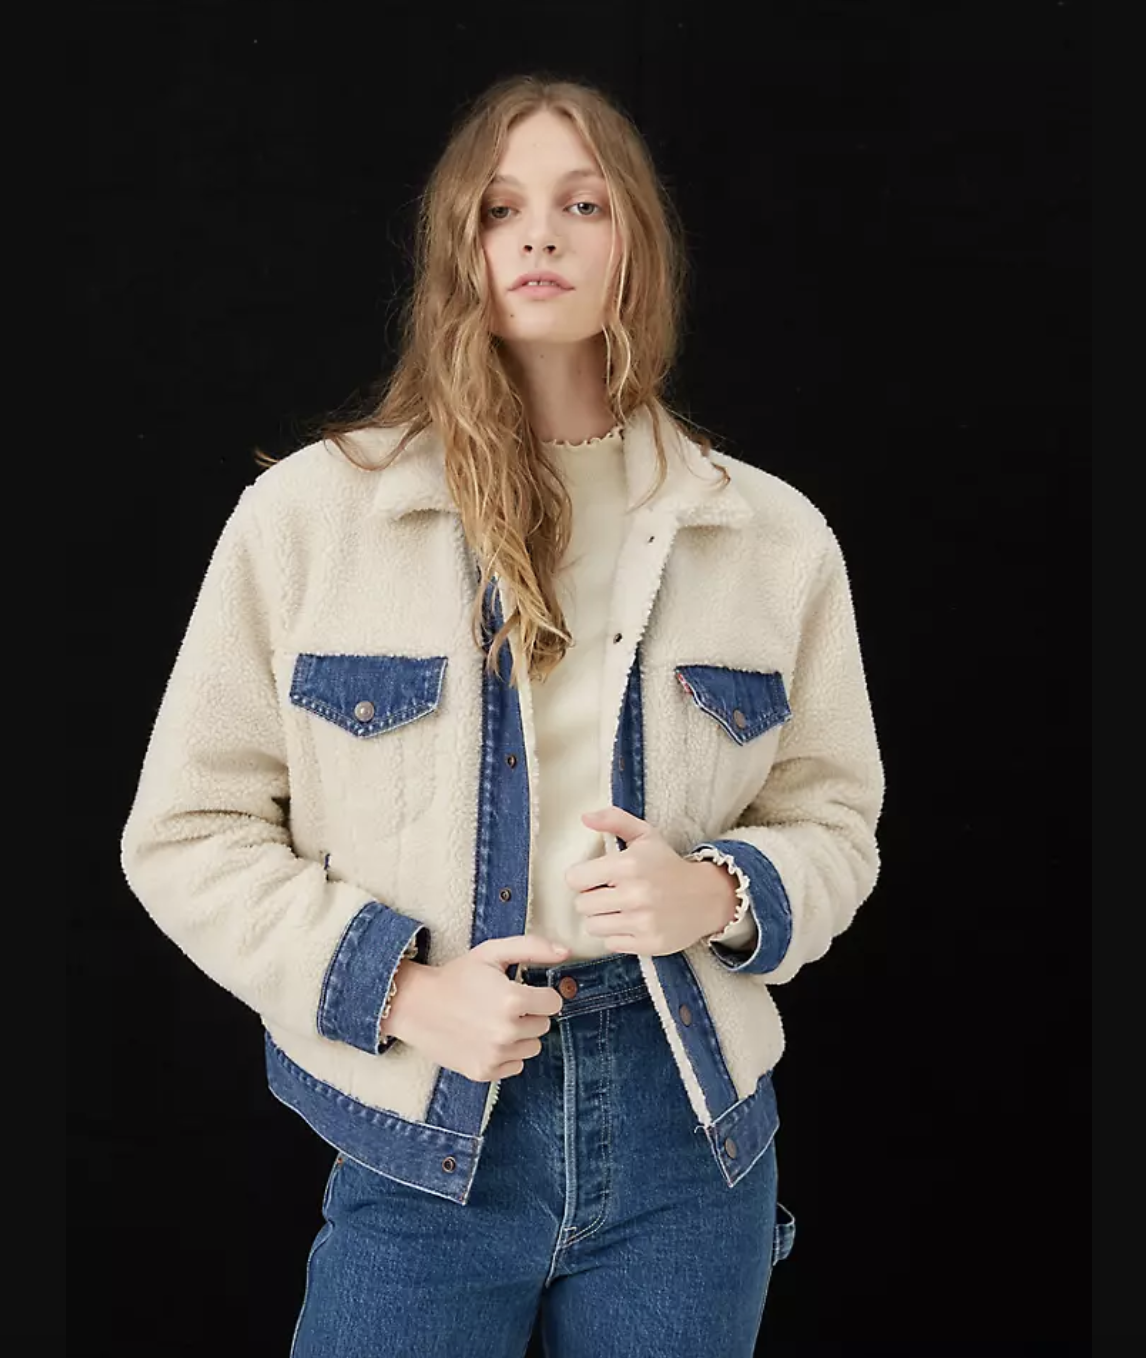 model in ivory trucker jacket with sherpa exterior and medium denim wash accents on pockets adn sleeves